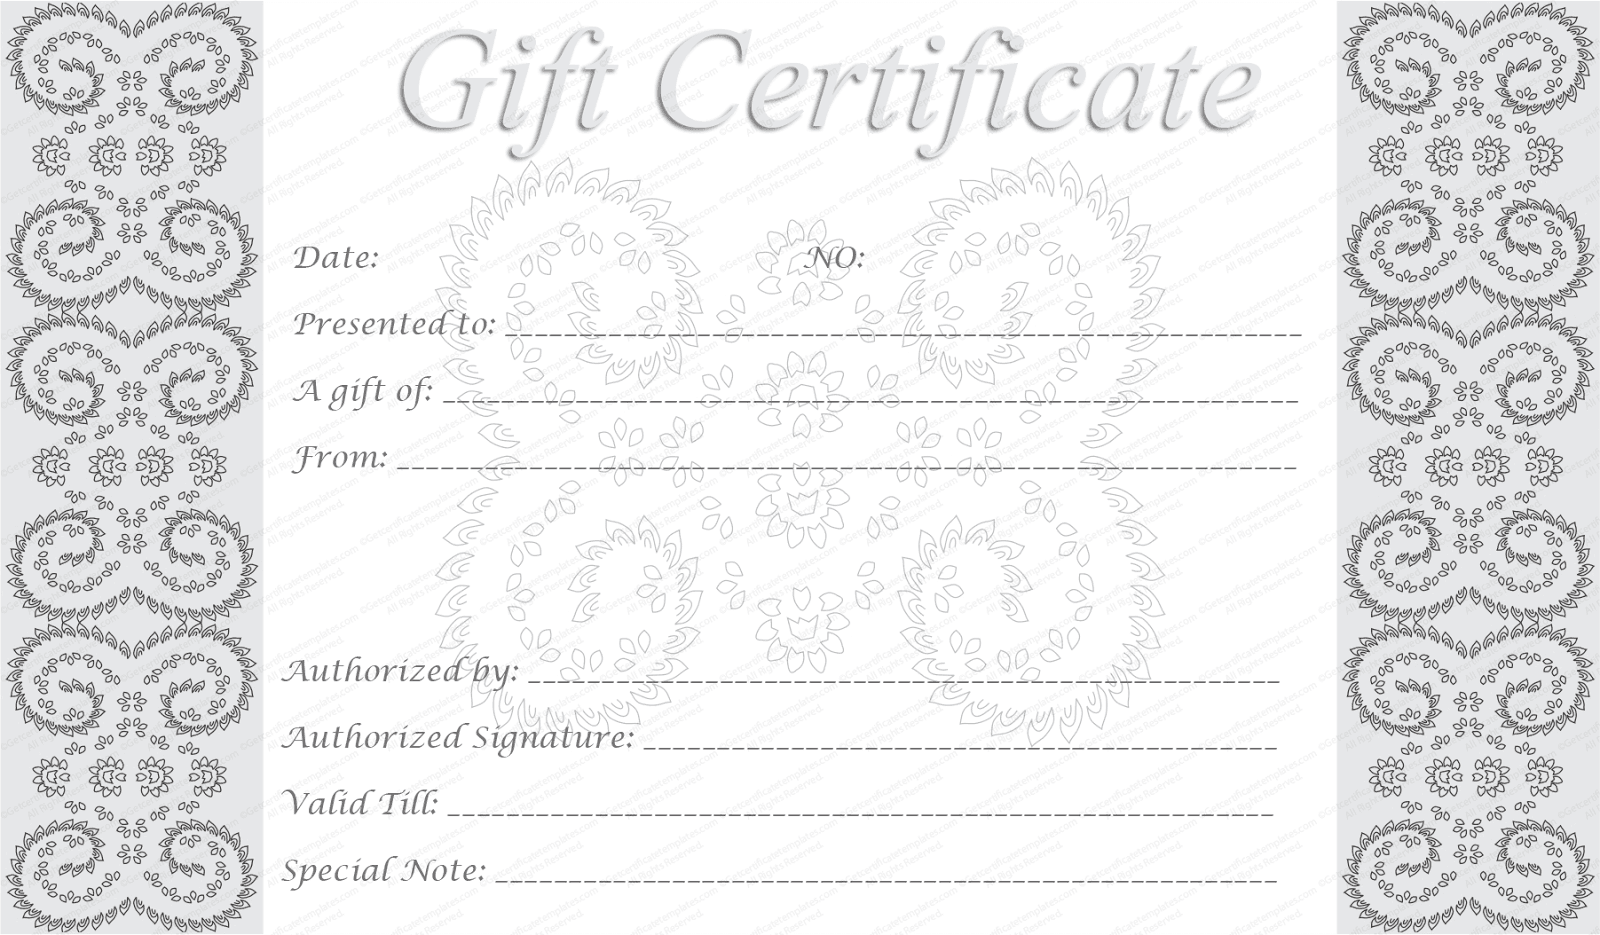 free printable fill in certificates, free printable blank gift certificate, free printable gift certificate templates, blank certificate templates for word, printable fill in gift certificates, free editable printable certificates, free customizable gift certificate, make a certificate online and print free, gift certificate log template, gift card log template, blank spa gift certificate blank template, free printable gift certificate forms, gift certificate blank template